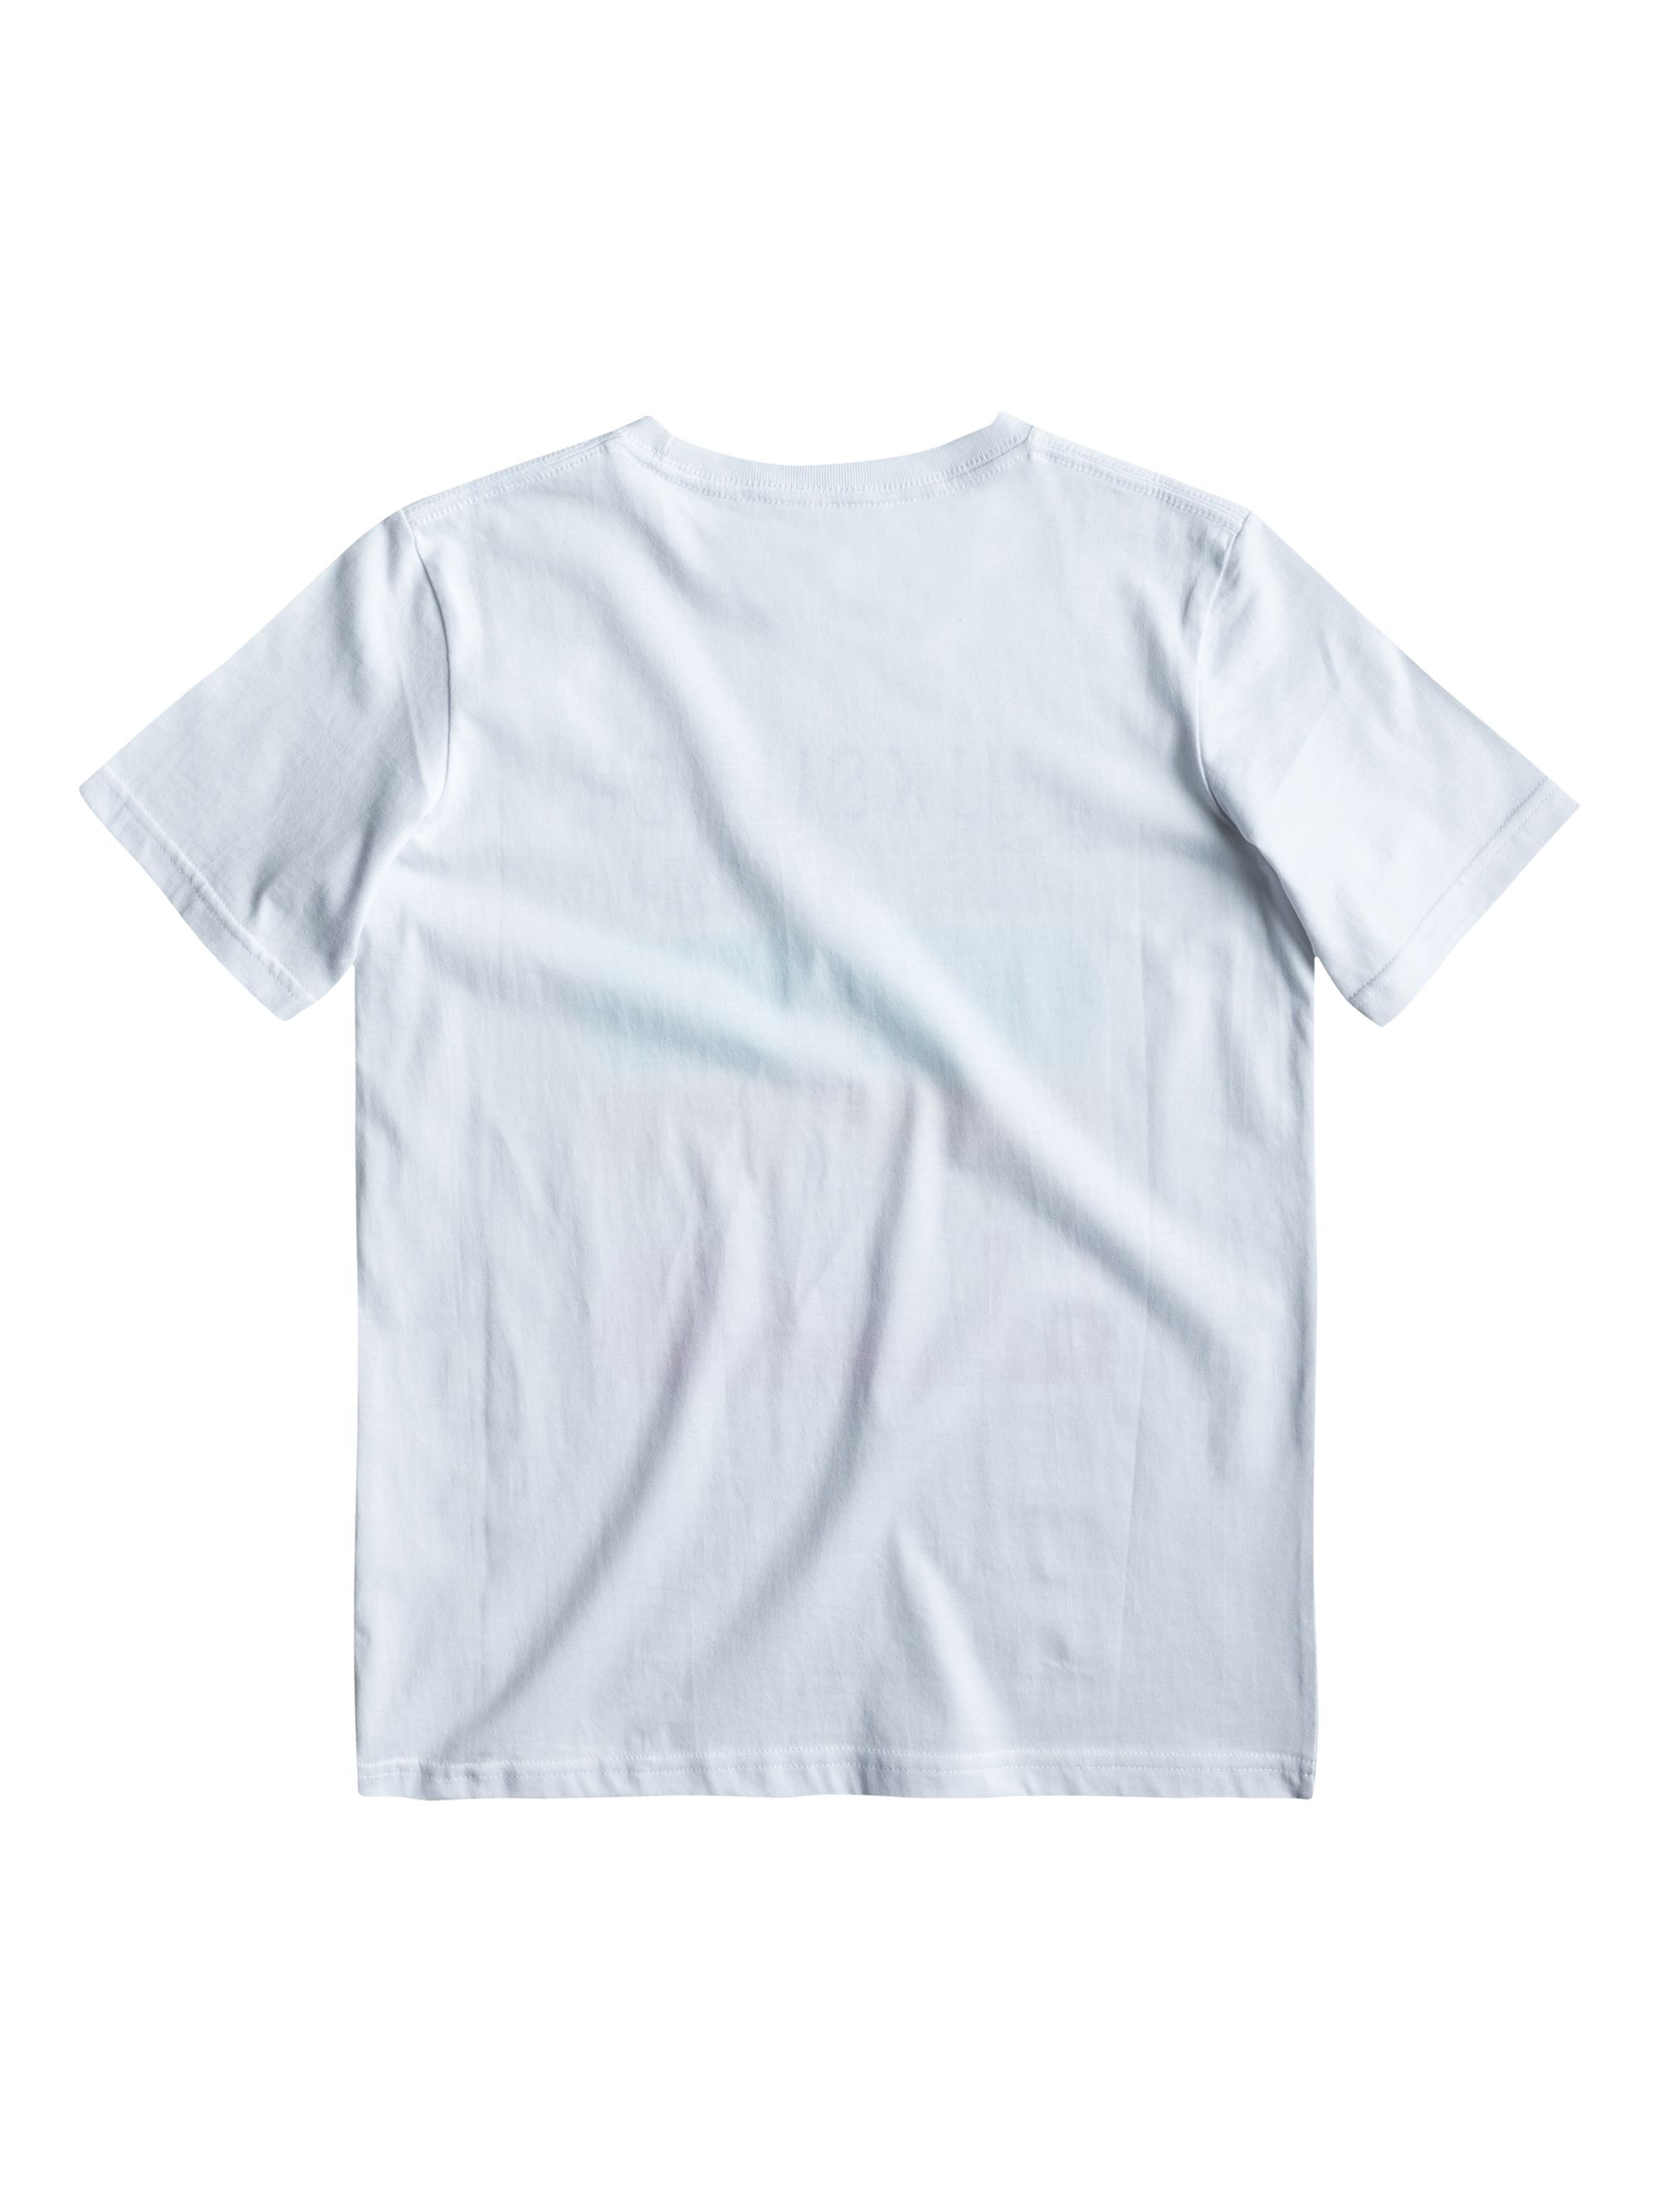 Boys  basic  msp q9 t-shirt